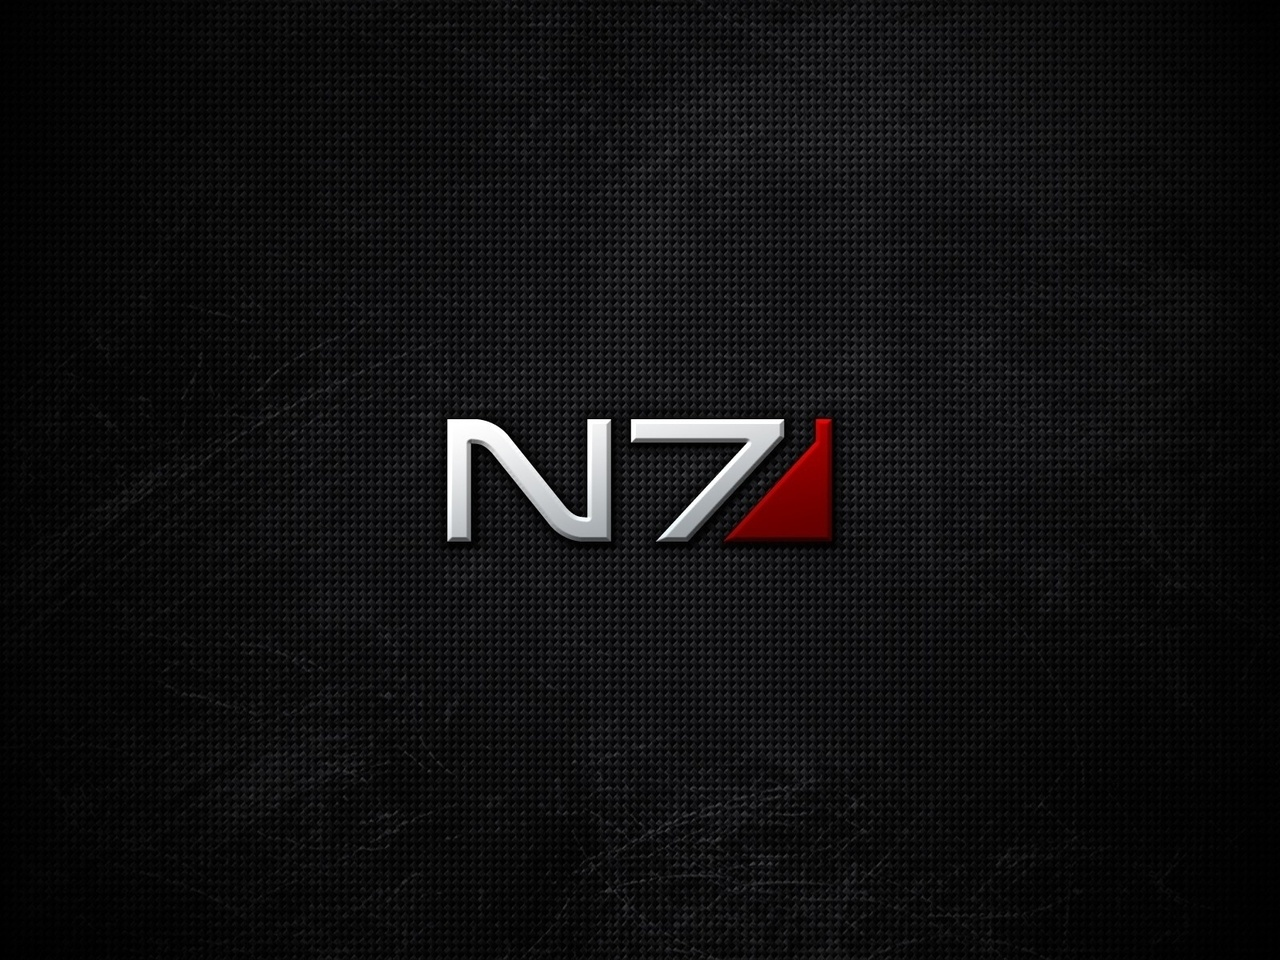 34511 download wallpaper Games, Background, Logos, Mass Effect screensavers and pictures for free